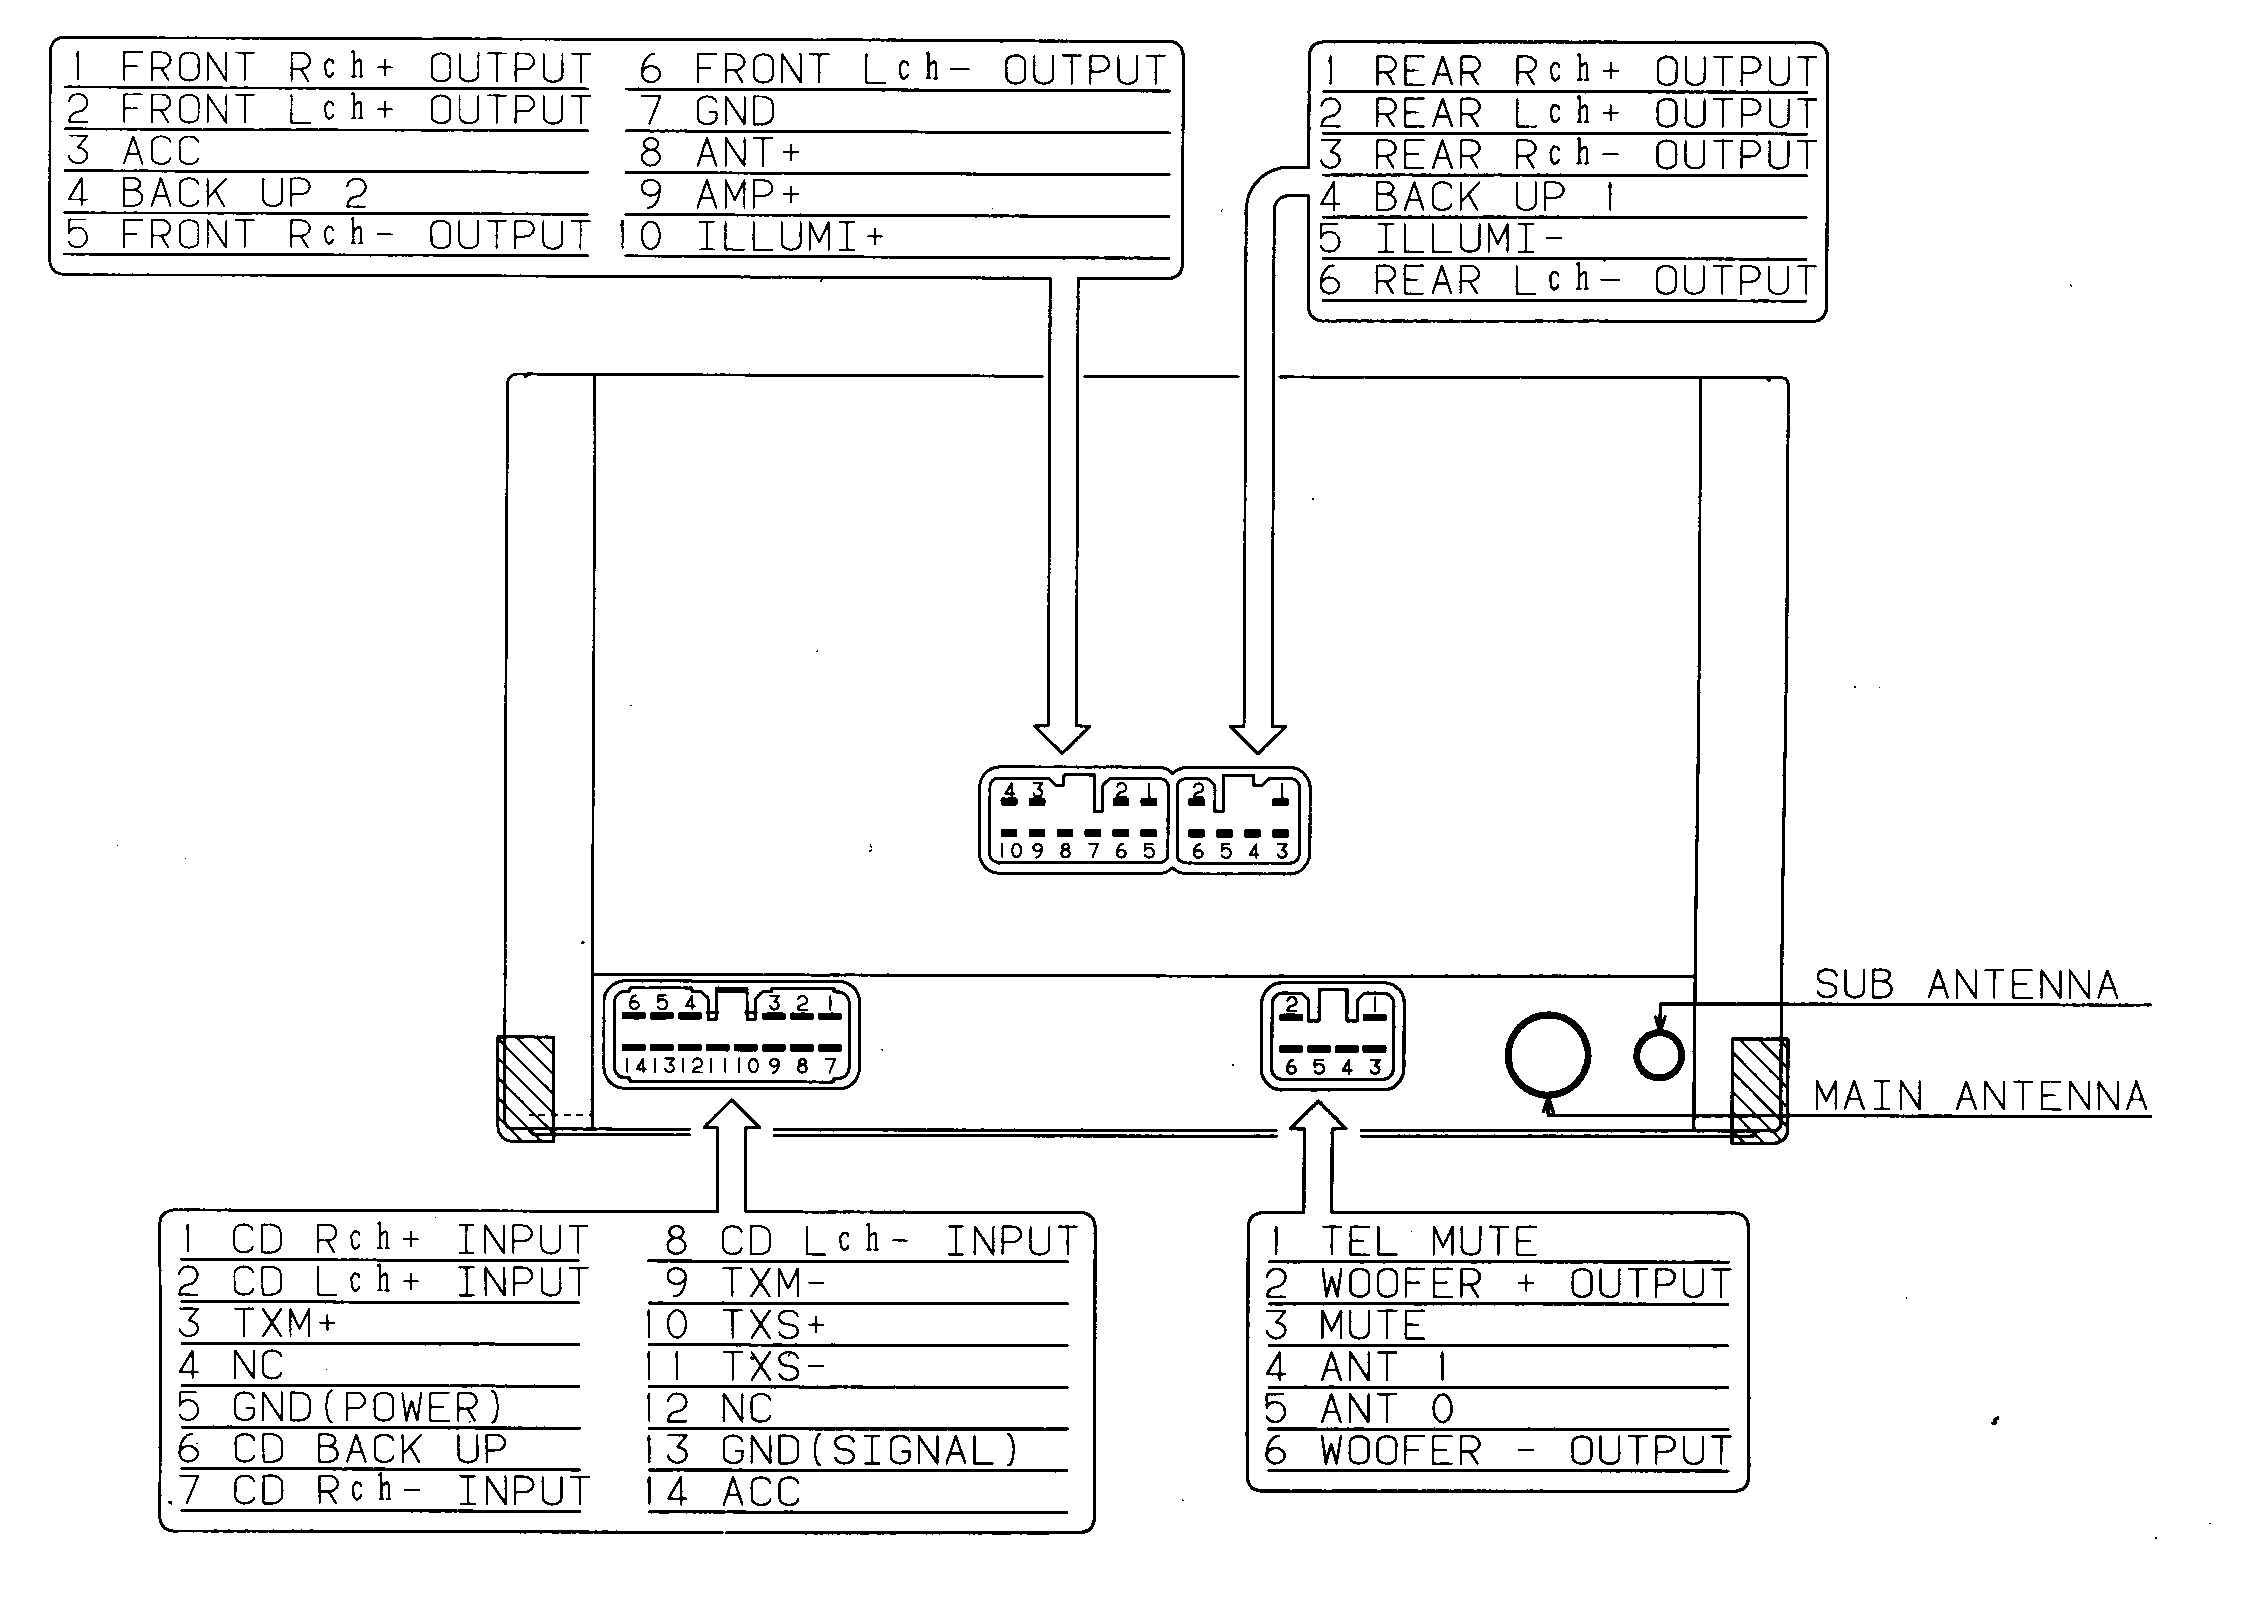 Stereo Connector Wiring Diagram Diagrams Car Audio Iso Lexus Radio Autoradio Harness 2001 Dodge Durango Adapter